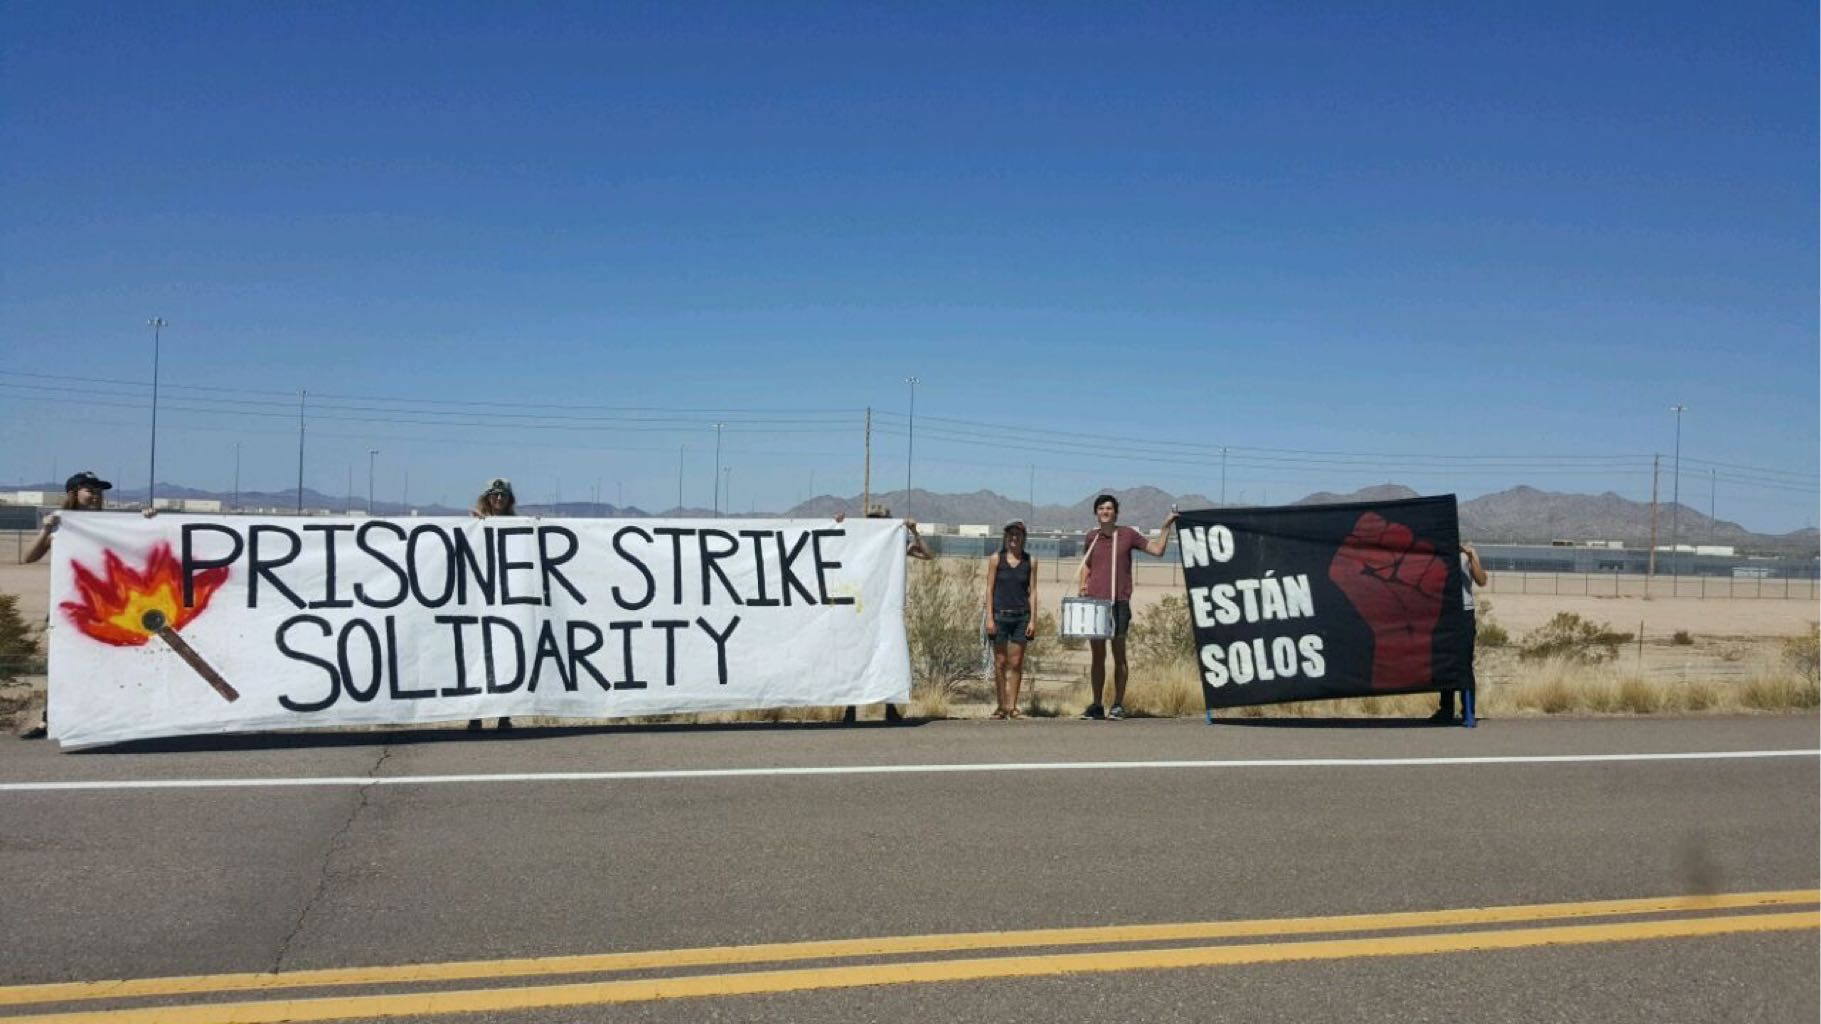 Rally outside of ASPC Lewis near Buckeye, AZ